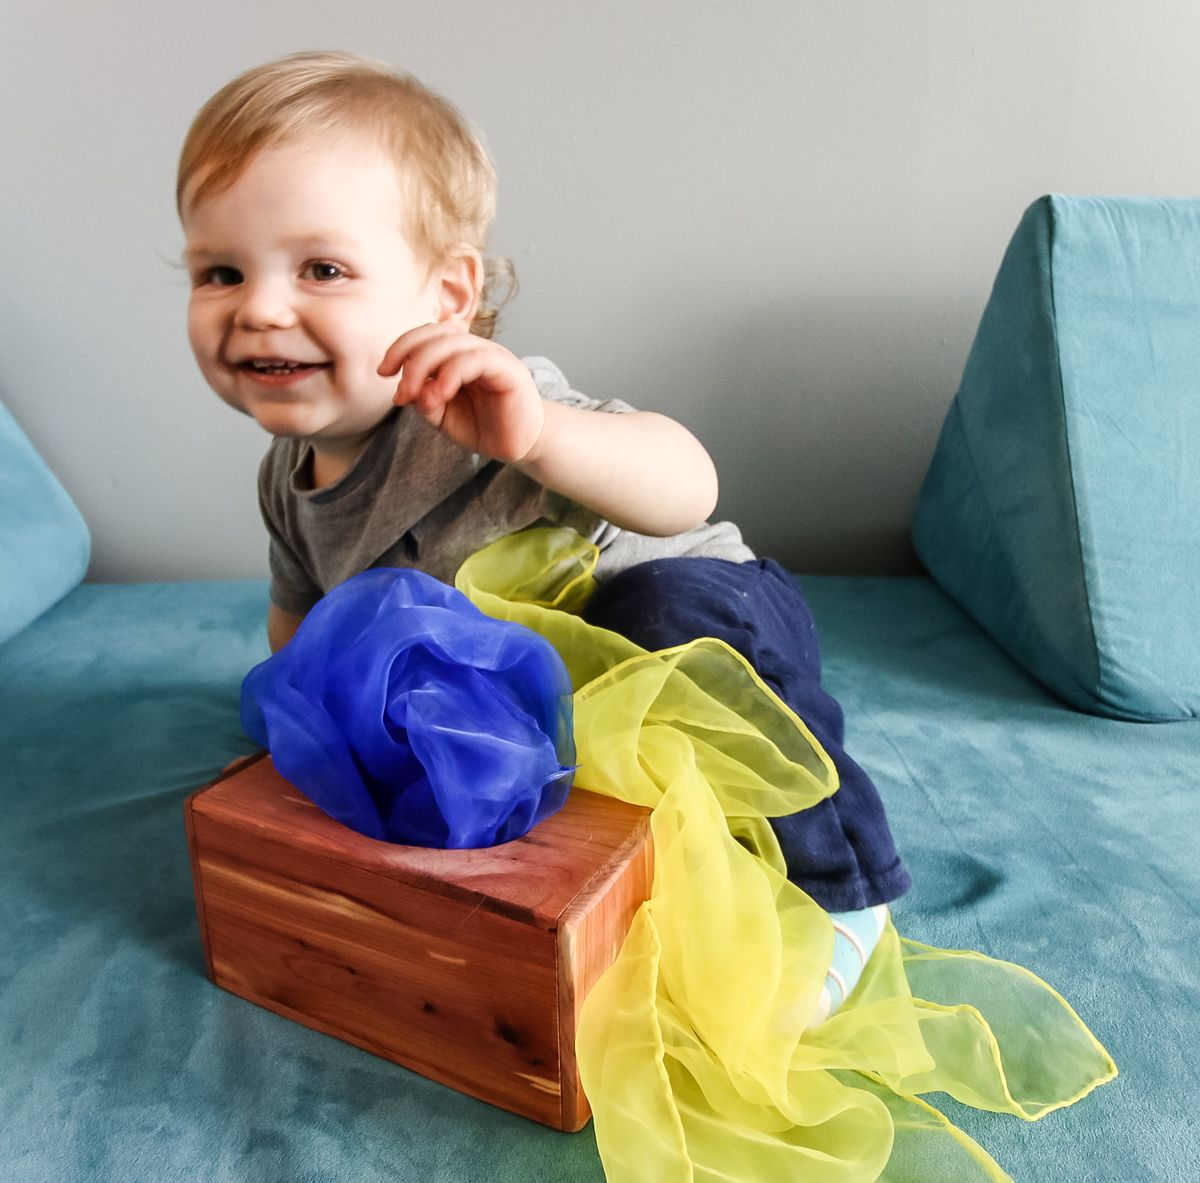 How to make a diy magic tissue box for babies in 2021